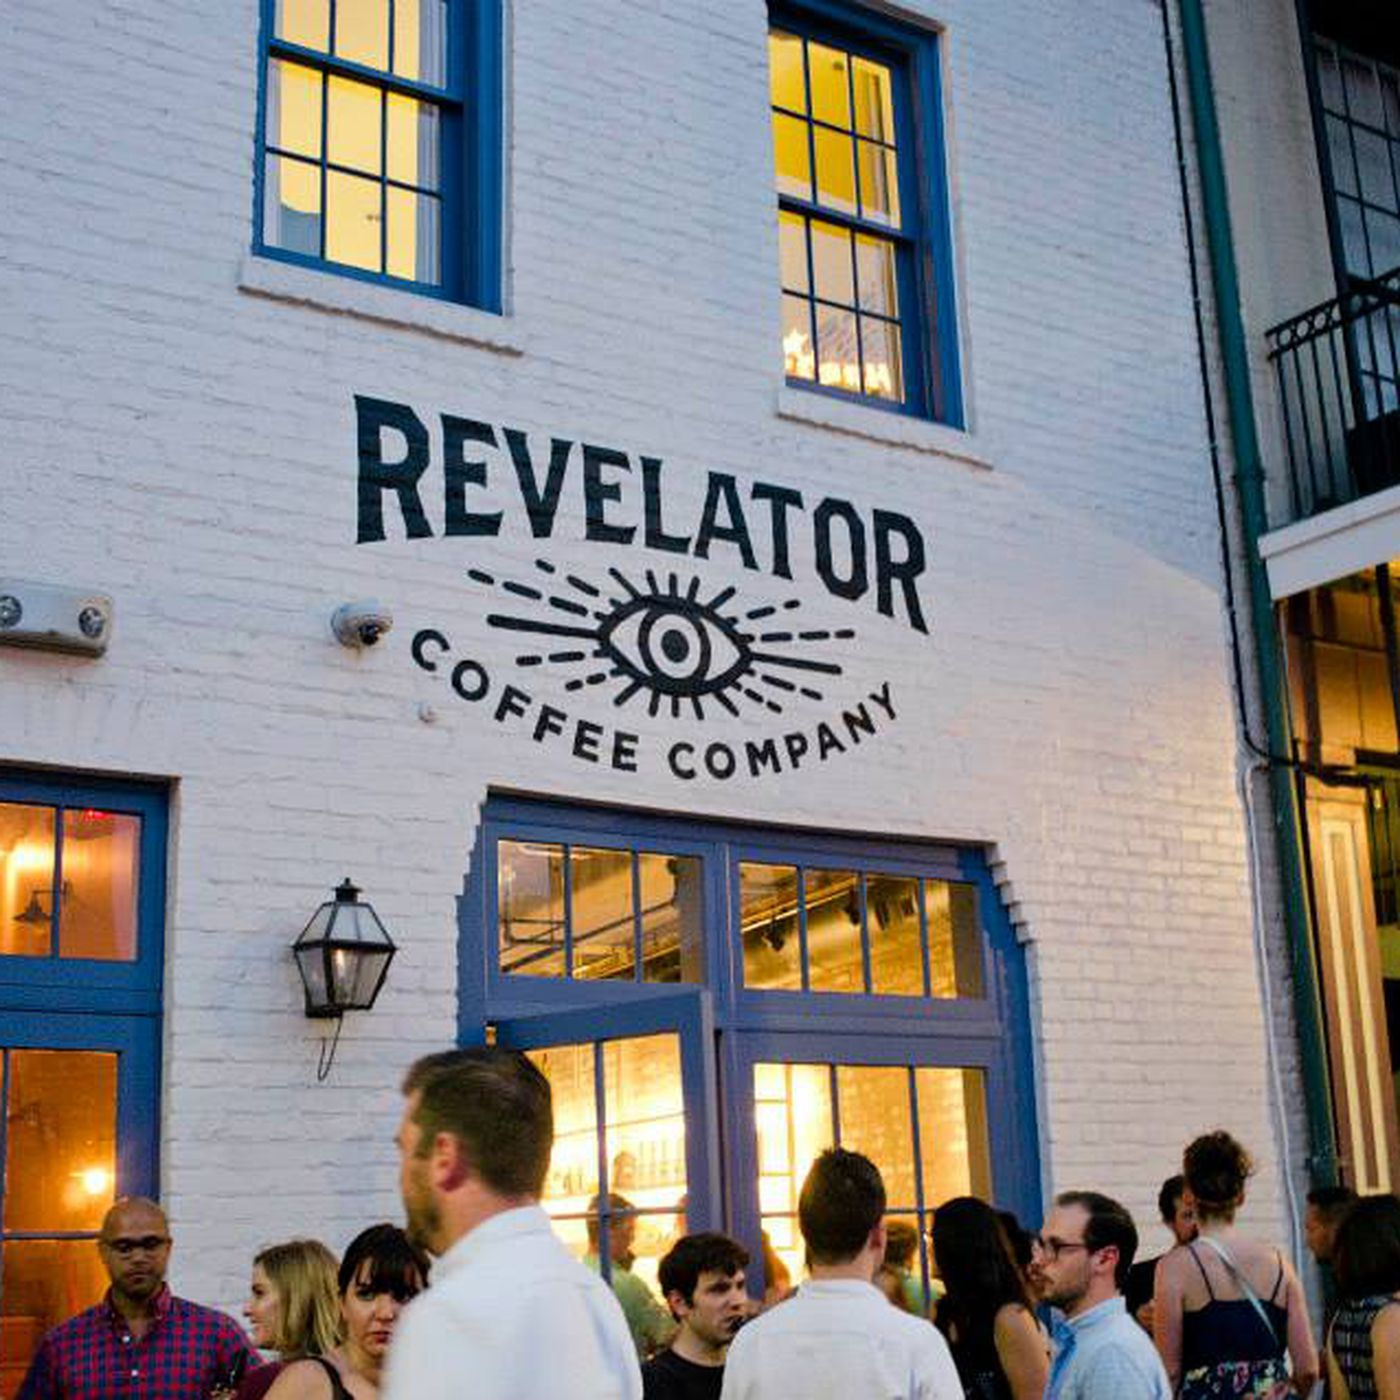 Can Revelator Coffee Be the Next Blue Bottle? - Eater